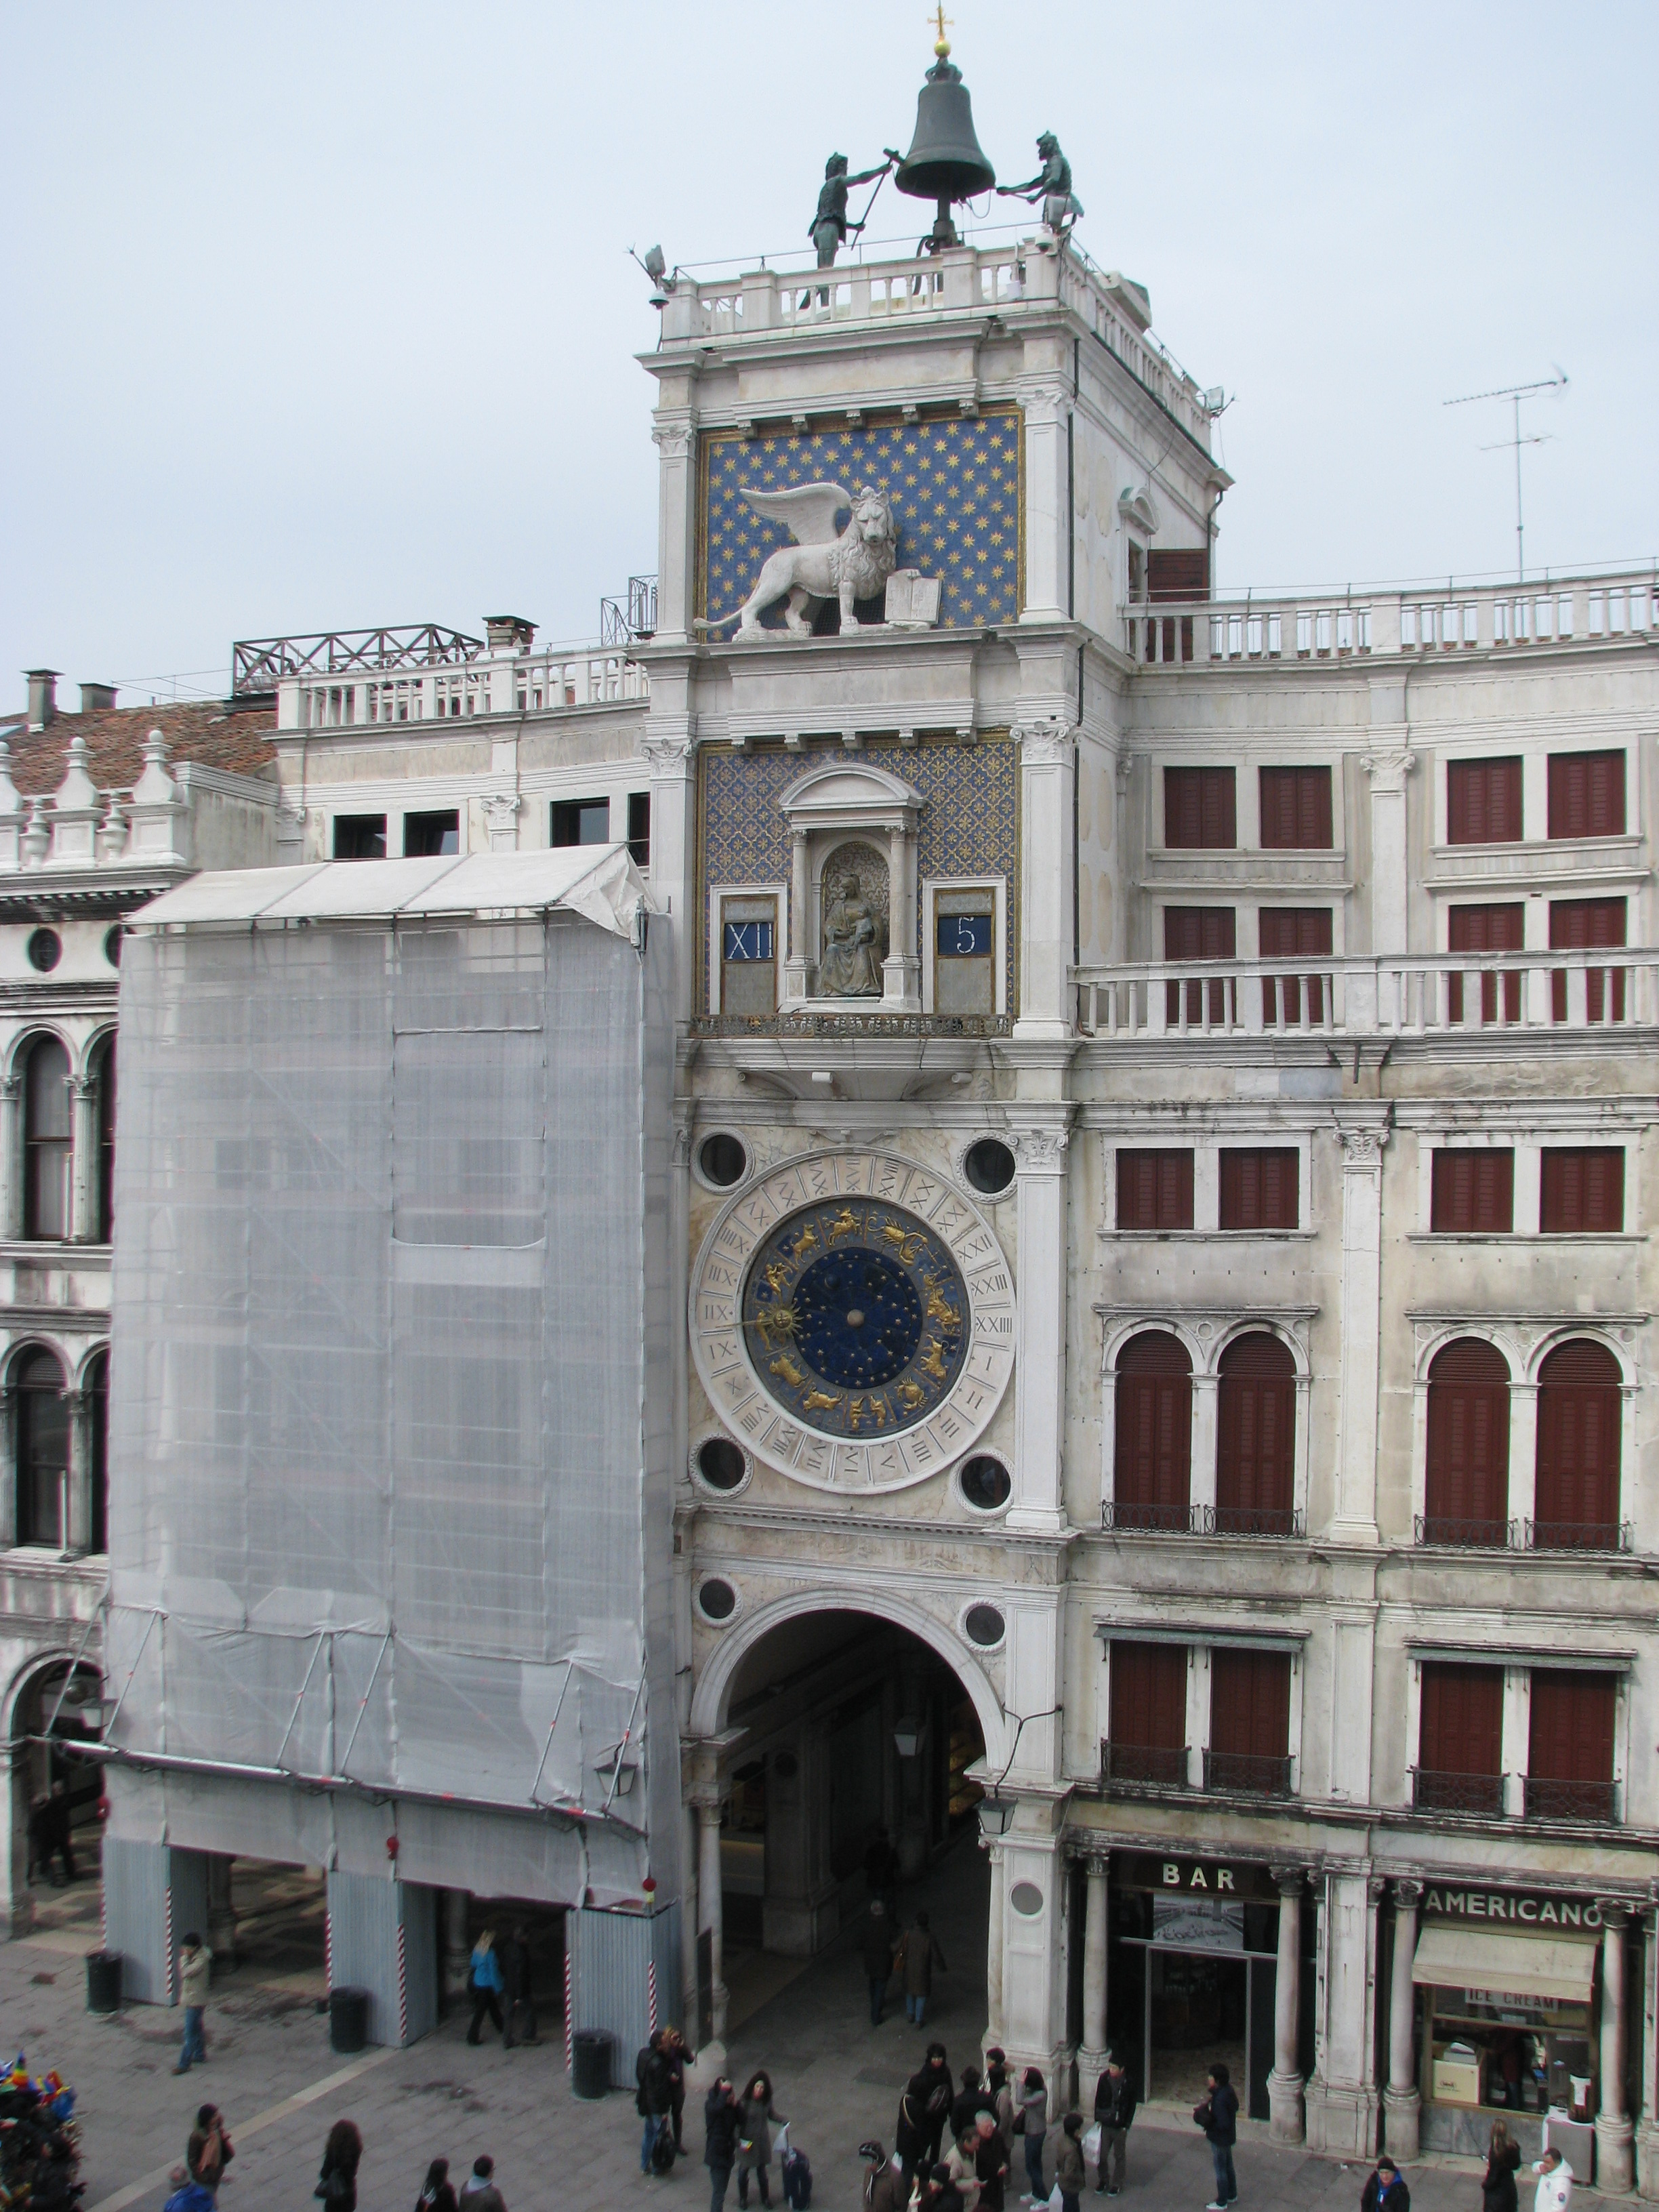 St Mark's Clocktower